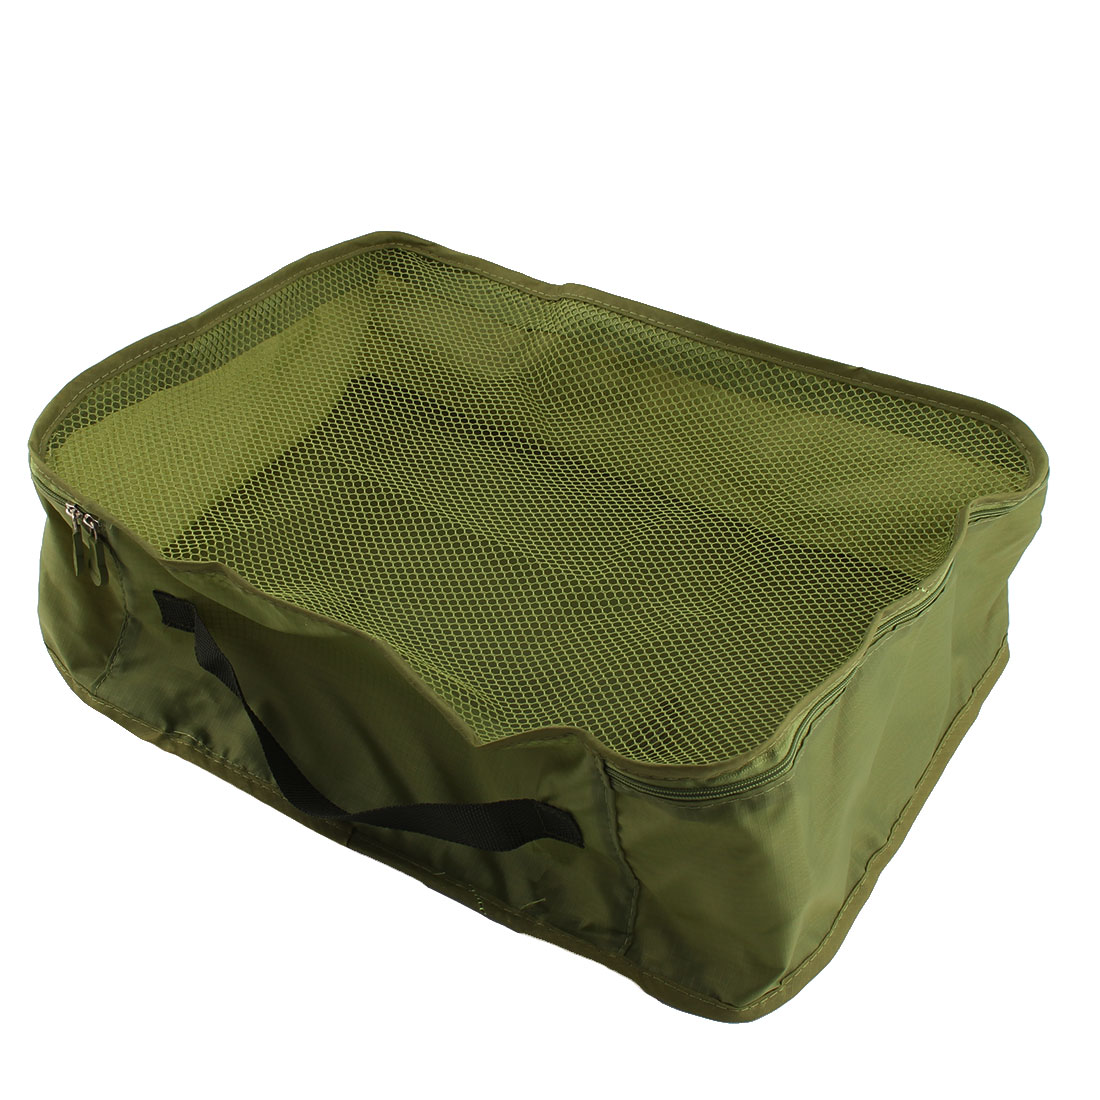 Travelling Zipper Closure Folding Mesh Packing Cube Package Pouch Bag Frost Green